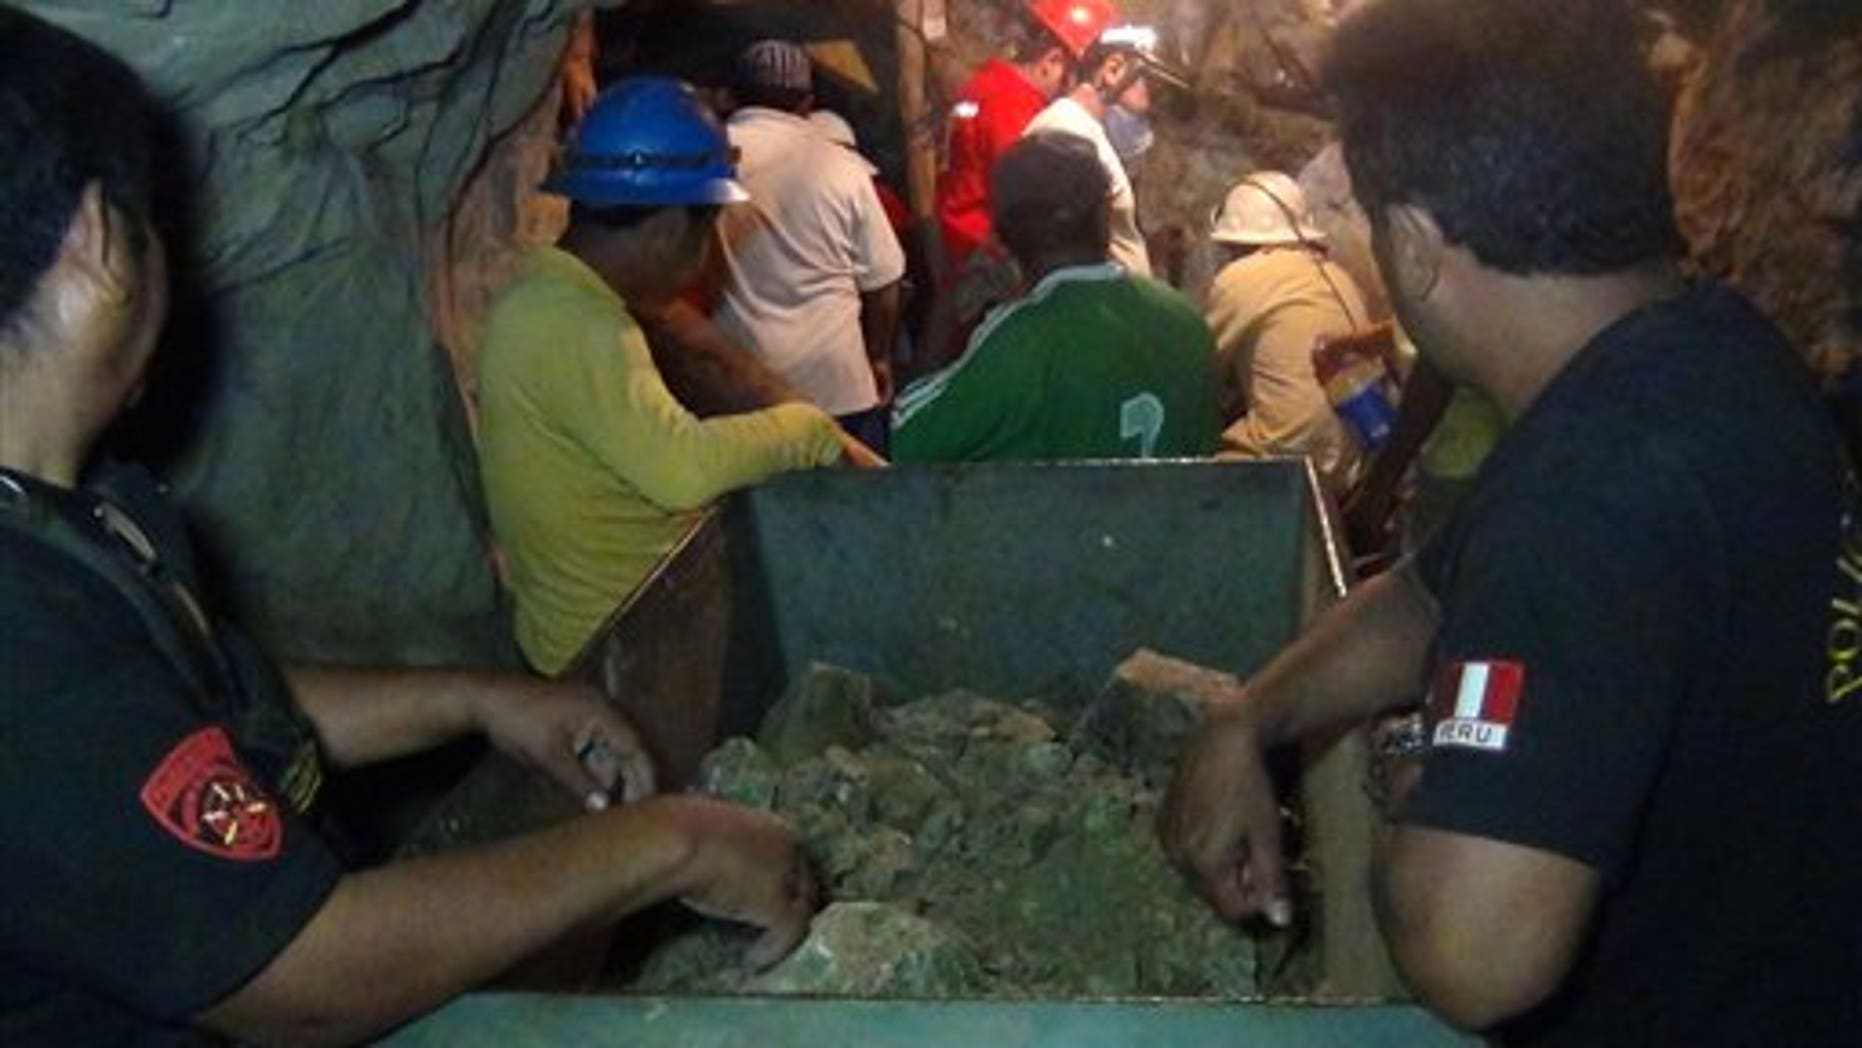 April 7, 2012: People work in a collapsed mine to rescue trapped miners in Ica, Peru. According to Peruvians authorities, nine miners trapped since Thursday in a collapsed mine are being supplied with sports drinks, soup and food while police, firefighters and other workers work to free them.